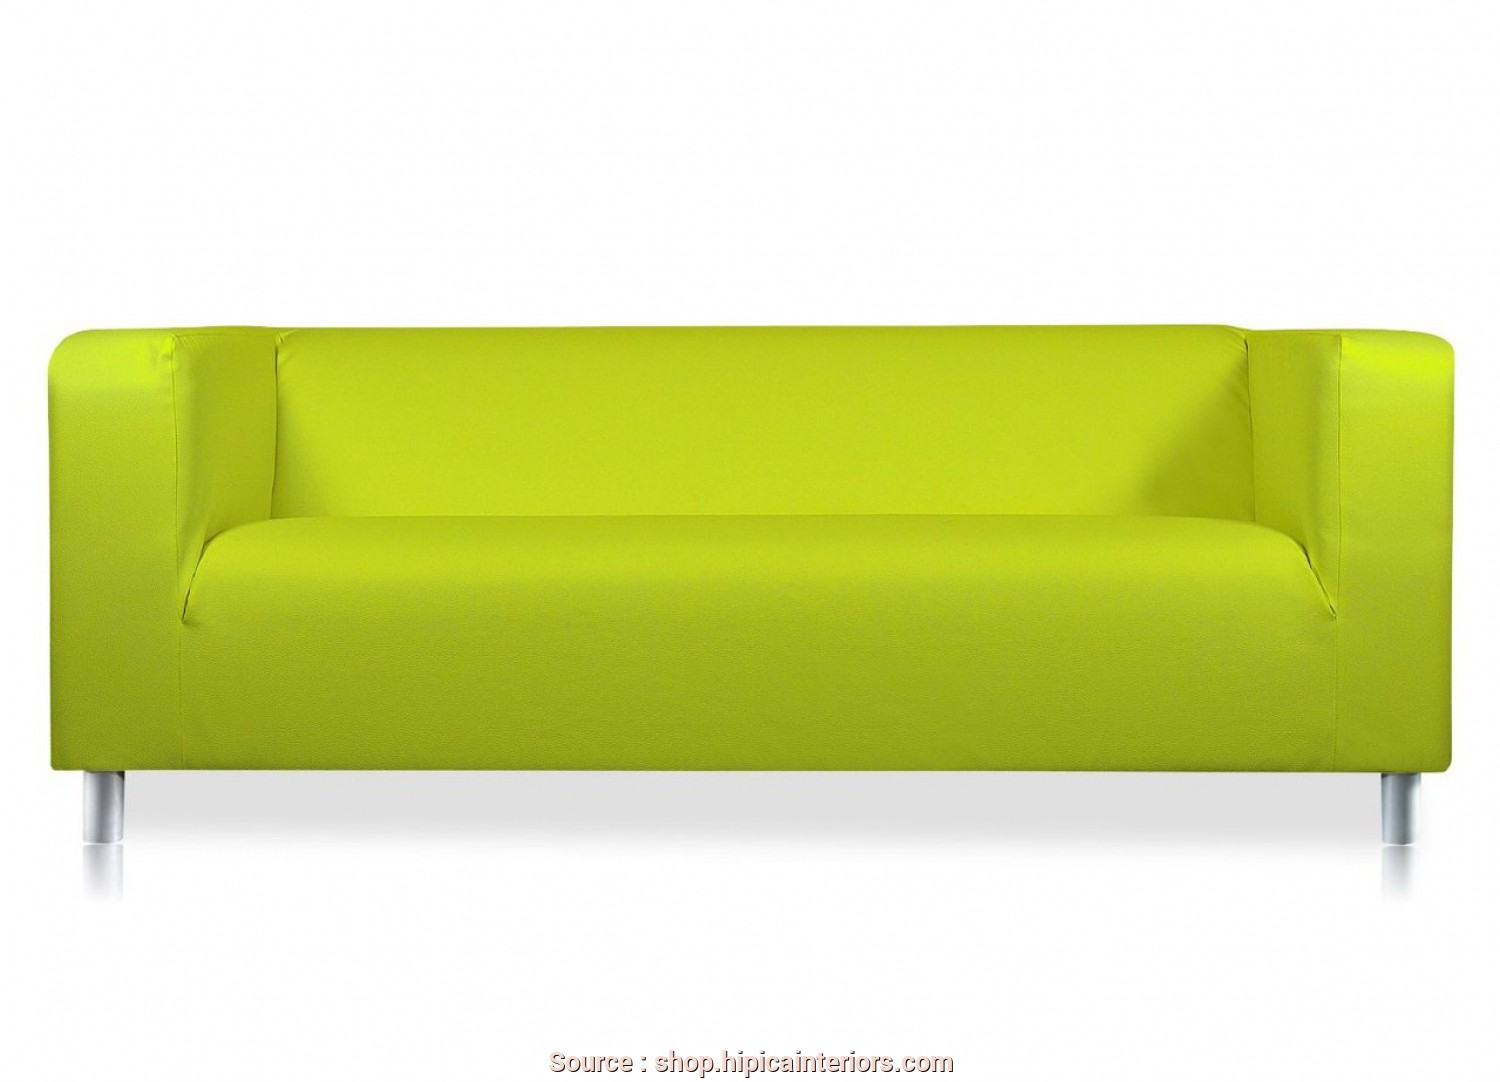 Ikea Klippan, Leather Sofa, Magnifico Verano Faux Leather Cover To, Ikea Klippan 2 Seat Sofa Lime Green